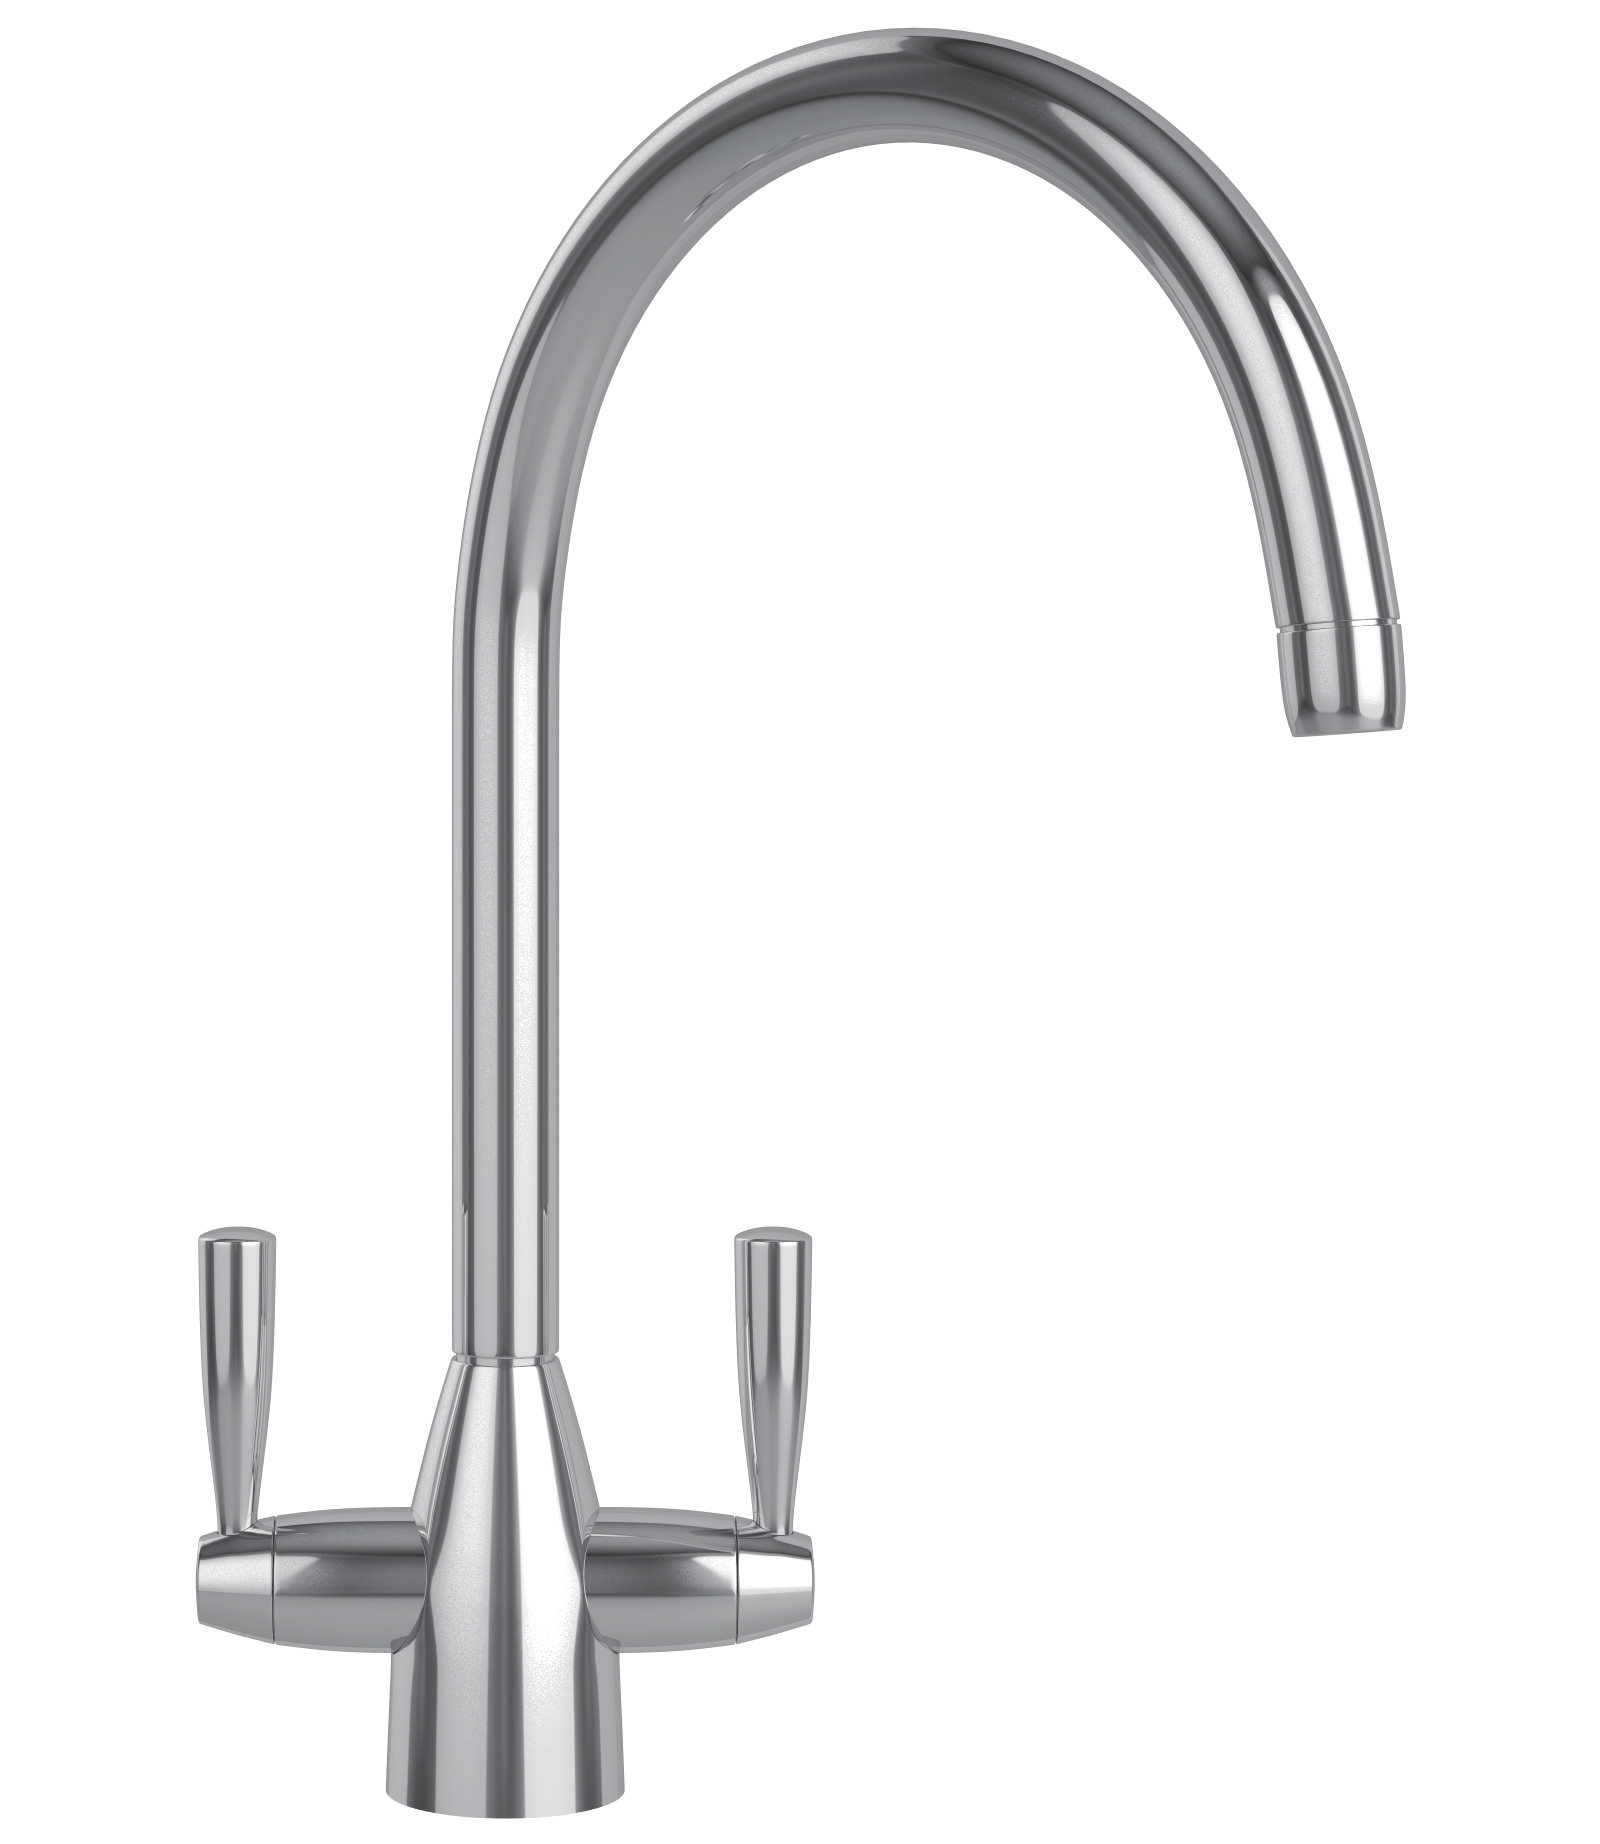 Exceptional Taps Uk Kitchen Sinks Part - 1: Franke Eiger Kitchen Sink Mixer Tap Chrome